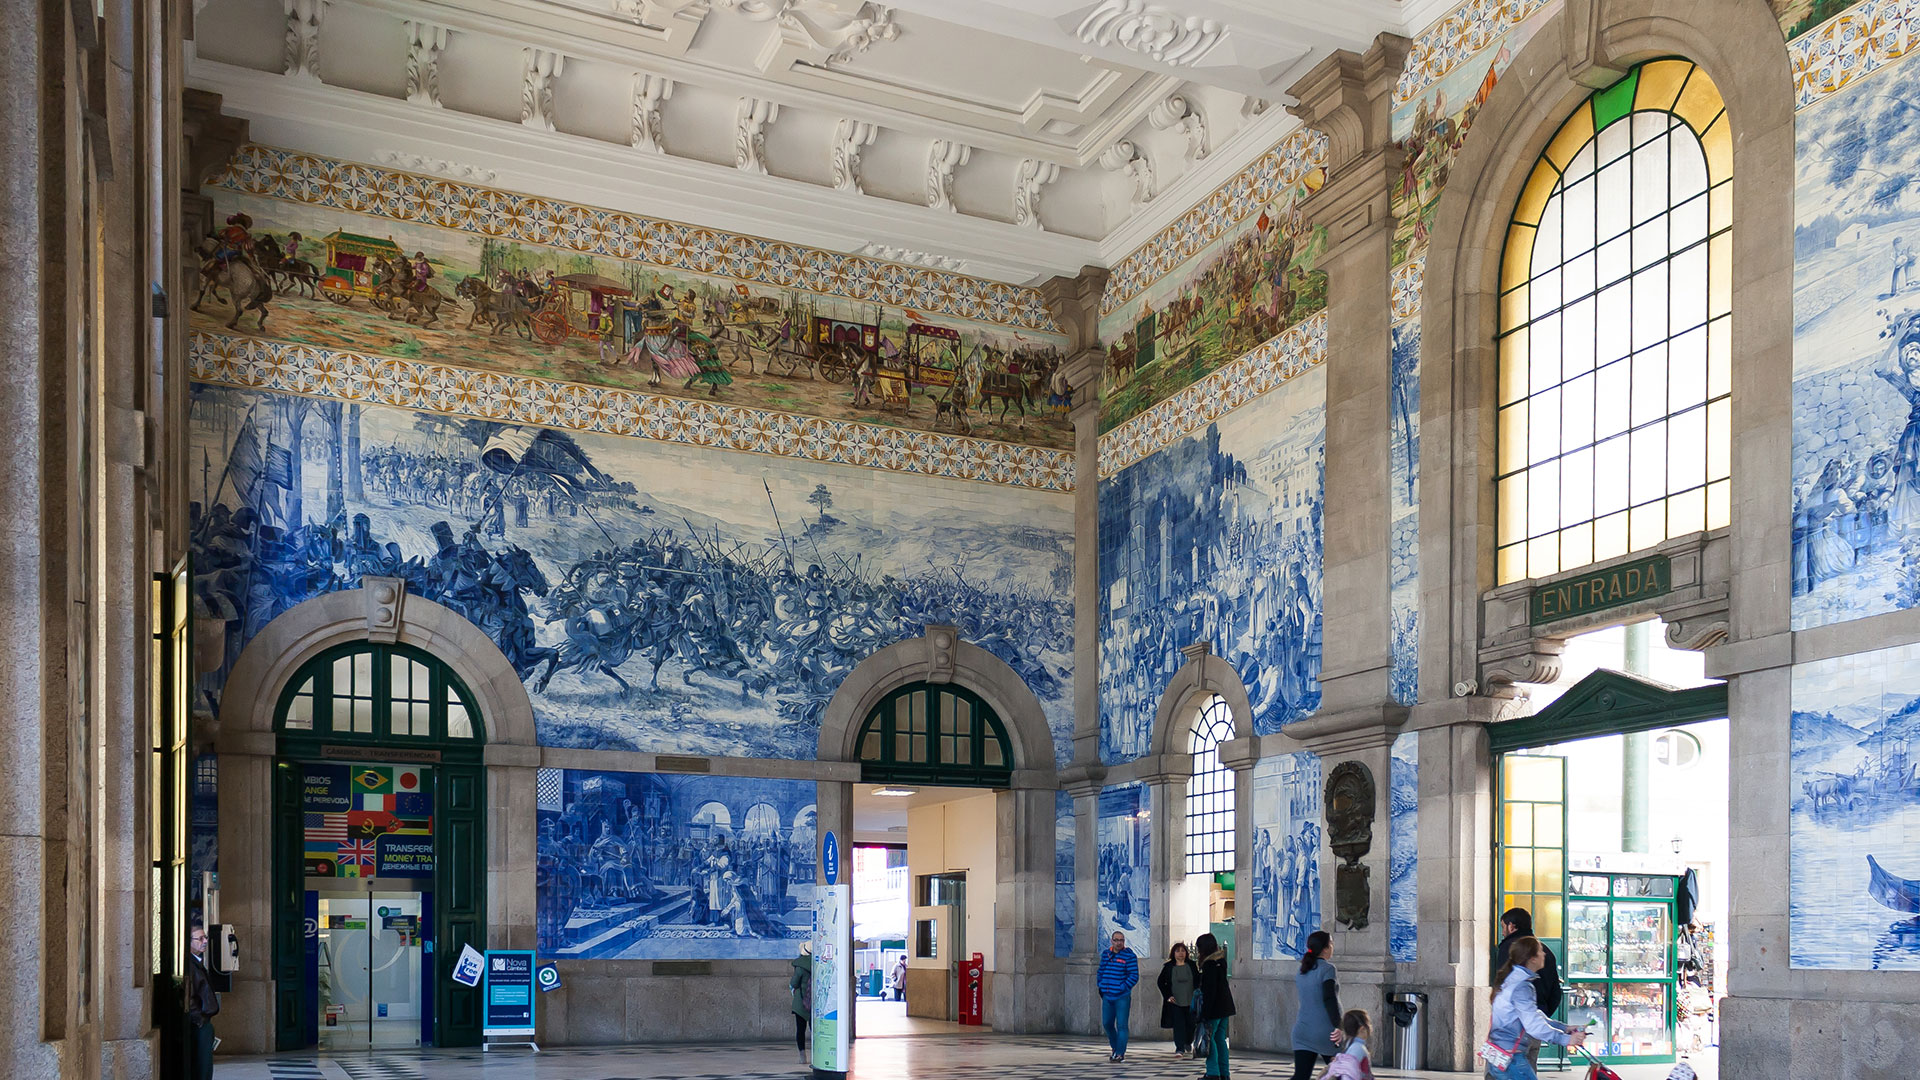 S. Bento train station | 4 postcard perfect images: first impressions of Porto.